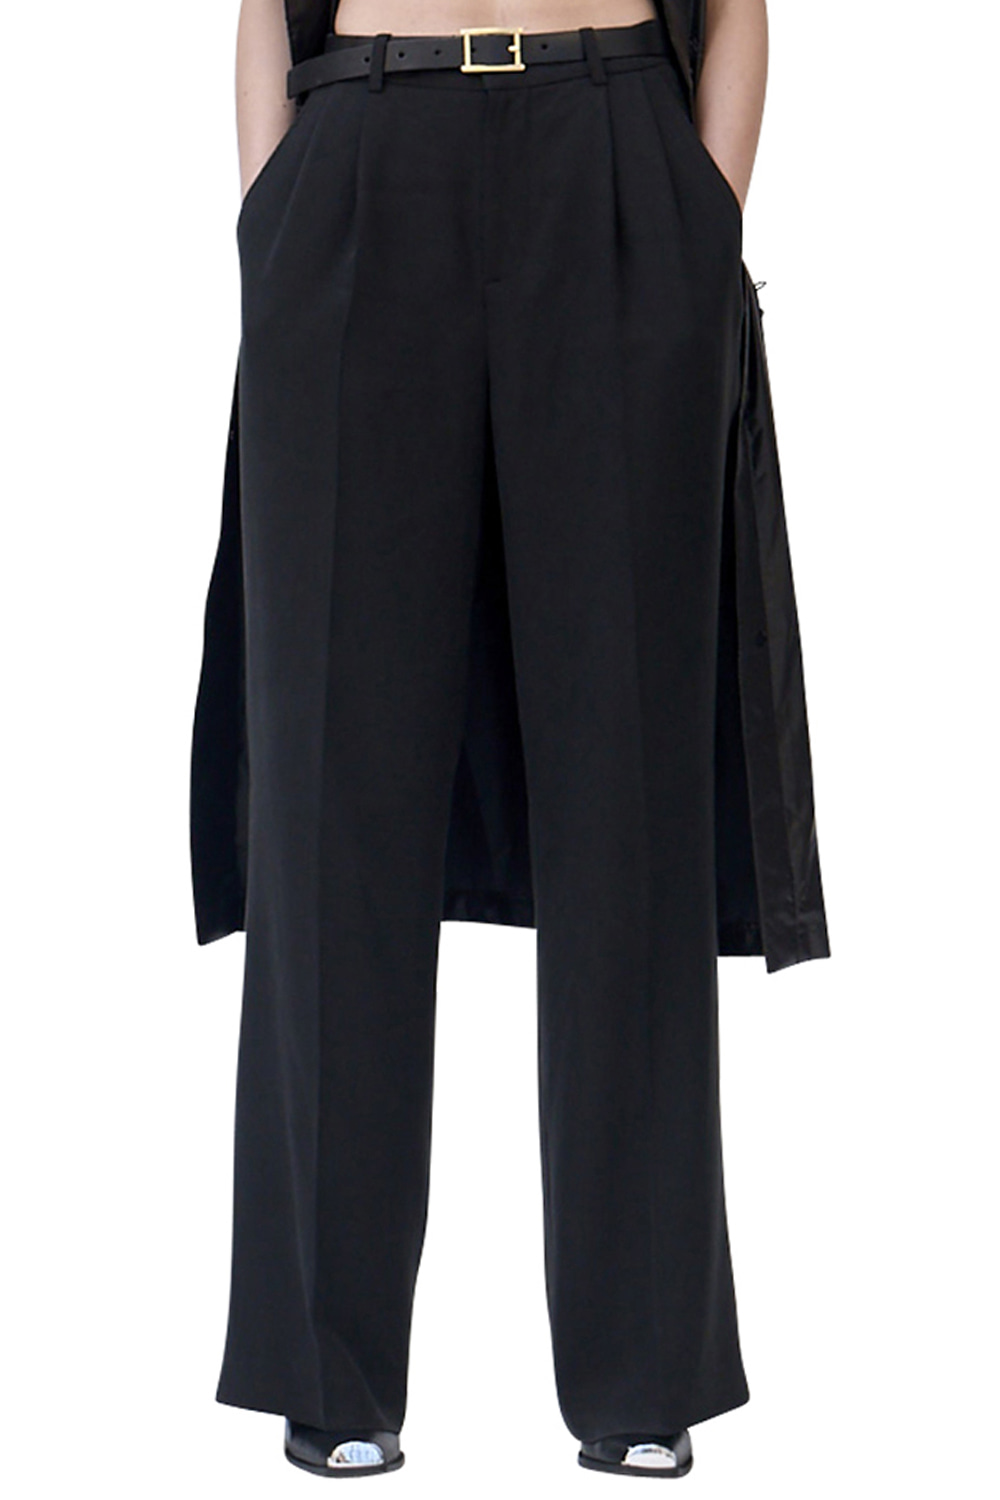 UNISEX BLACK WIDE LEG TROUSERS